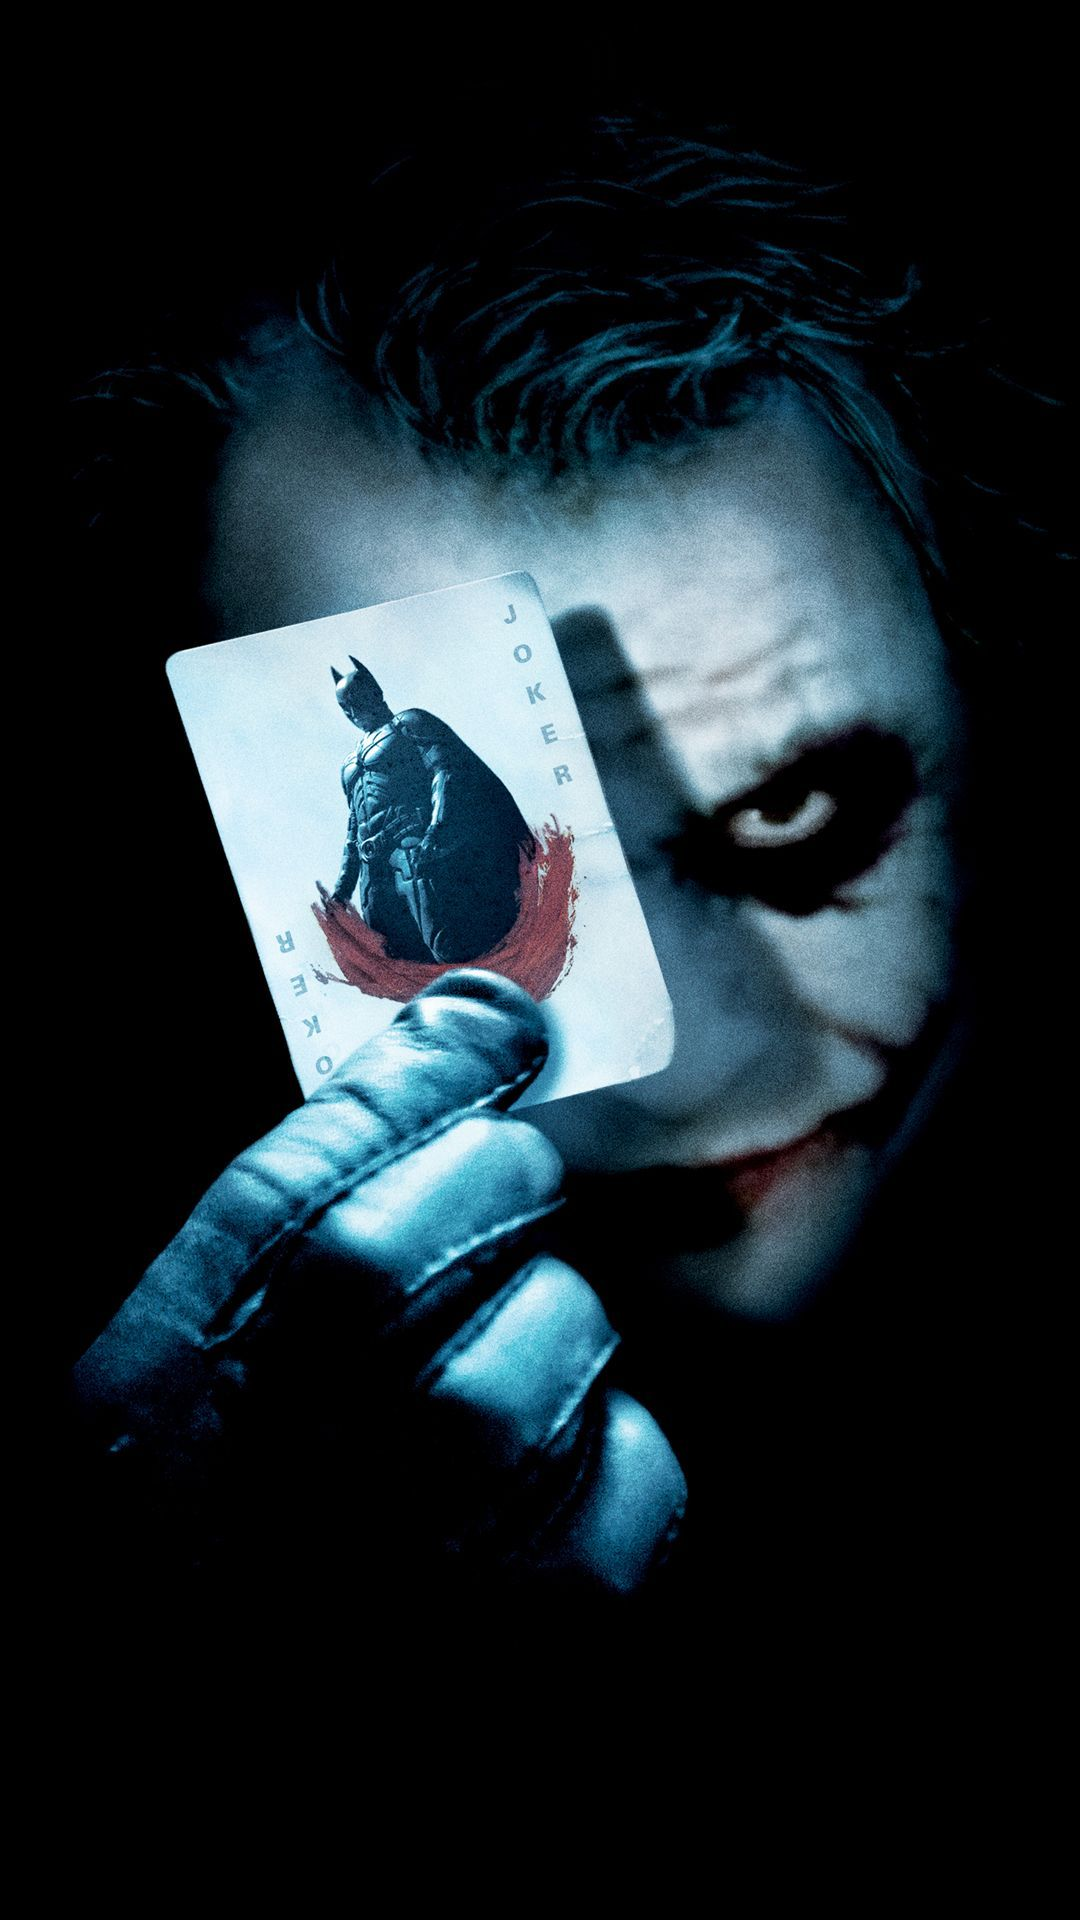 Joker Cell Phone Wallpapers Top Free Joker Cell Phone Backgrounds Wallpaperaccess Check out this fantastic collection of 1080x2340 wallpapers, with 54 1080x2340 popular wallpapers ▾. joker cell phone wallpapers top free